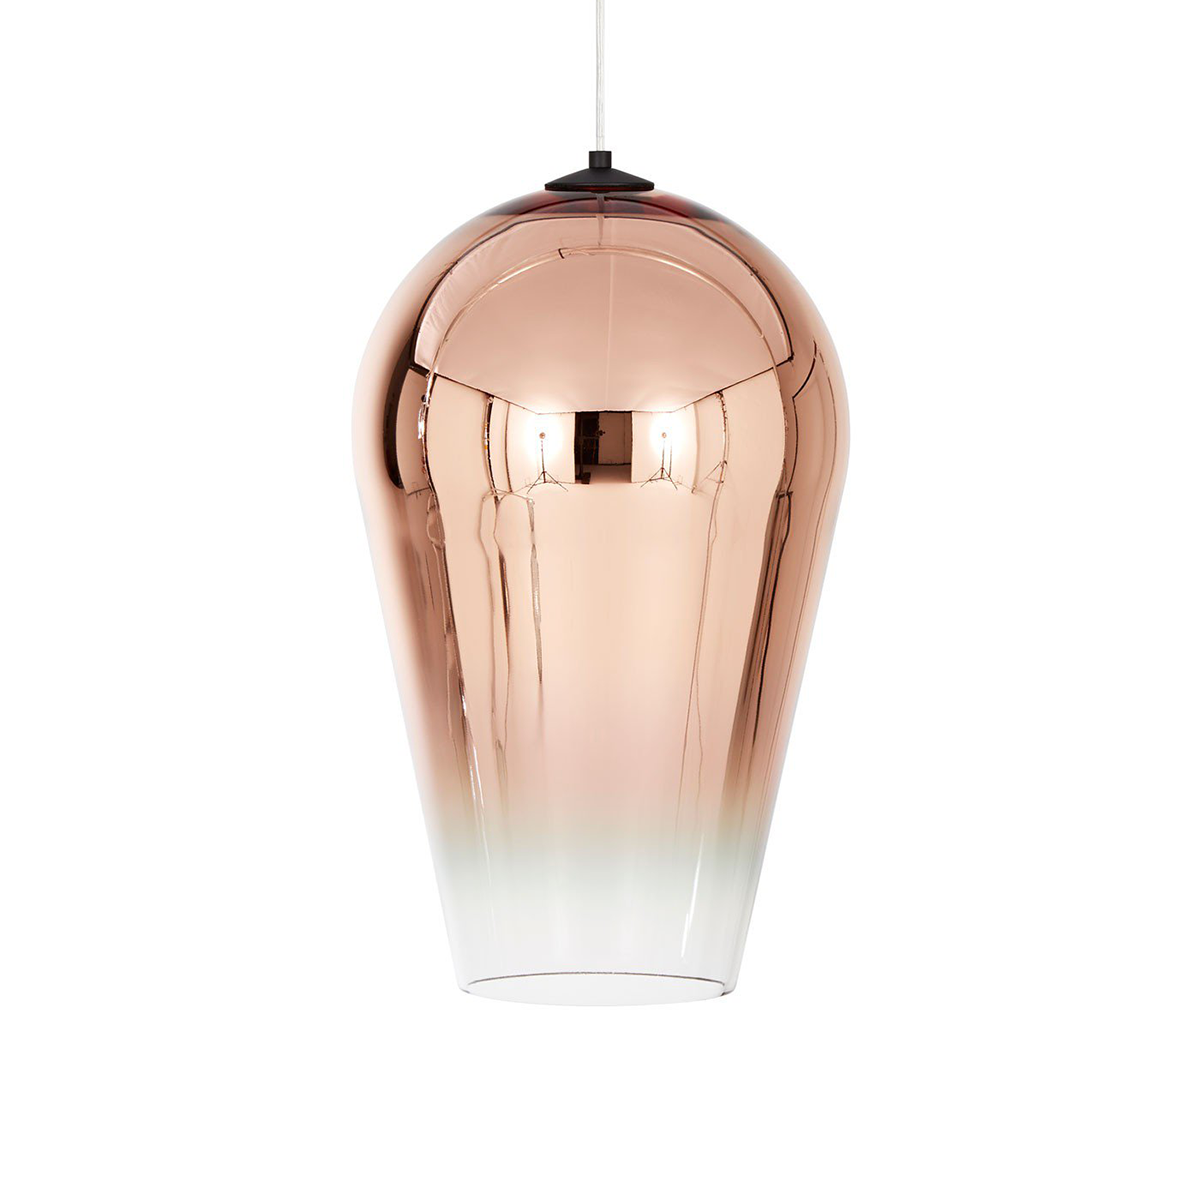 Tom Dixon Fade Suspension Lamp 50cm 漸層水滴系列 吊燈